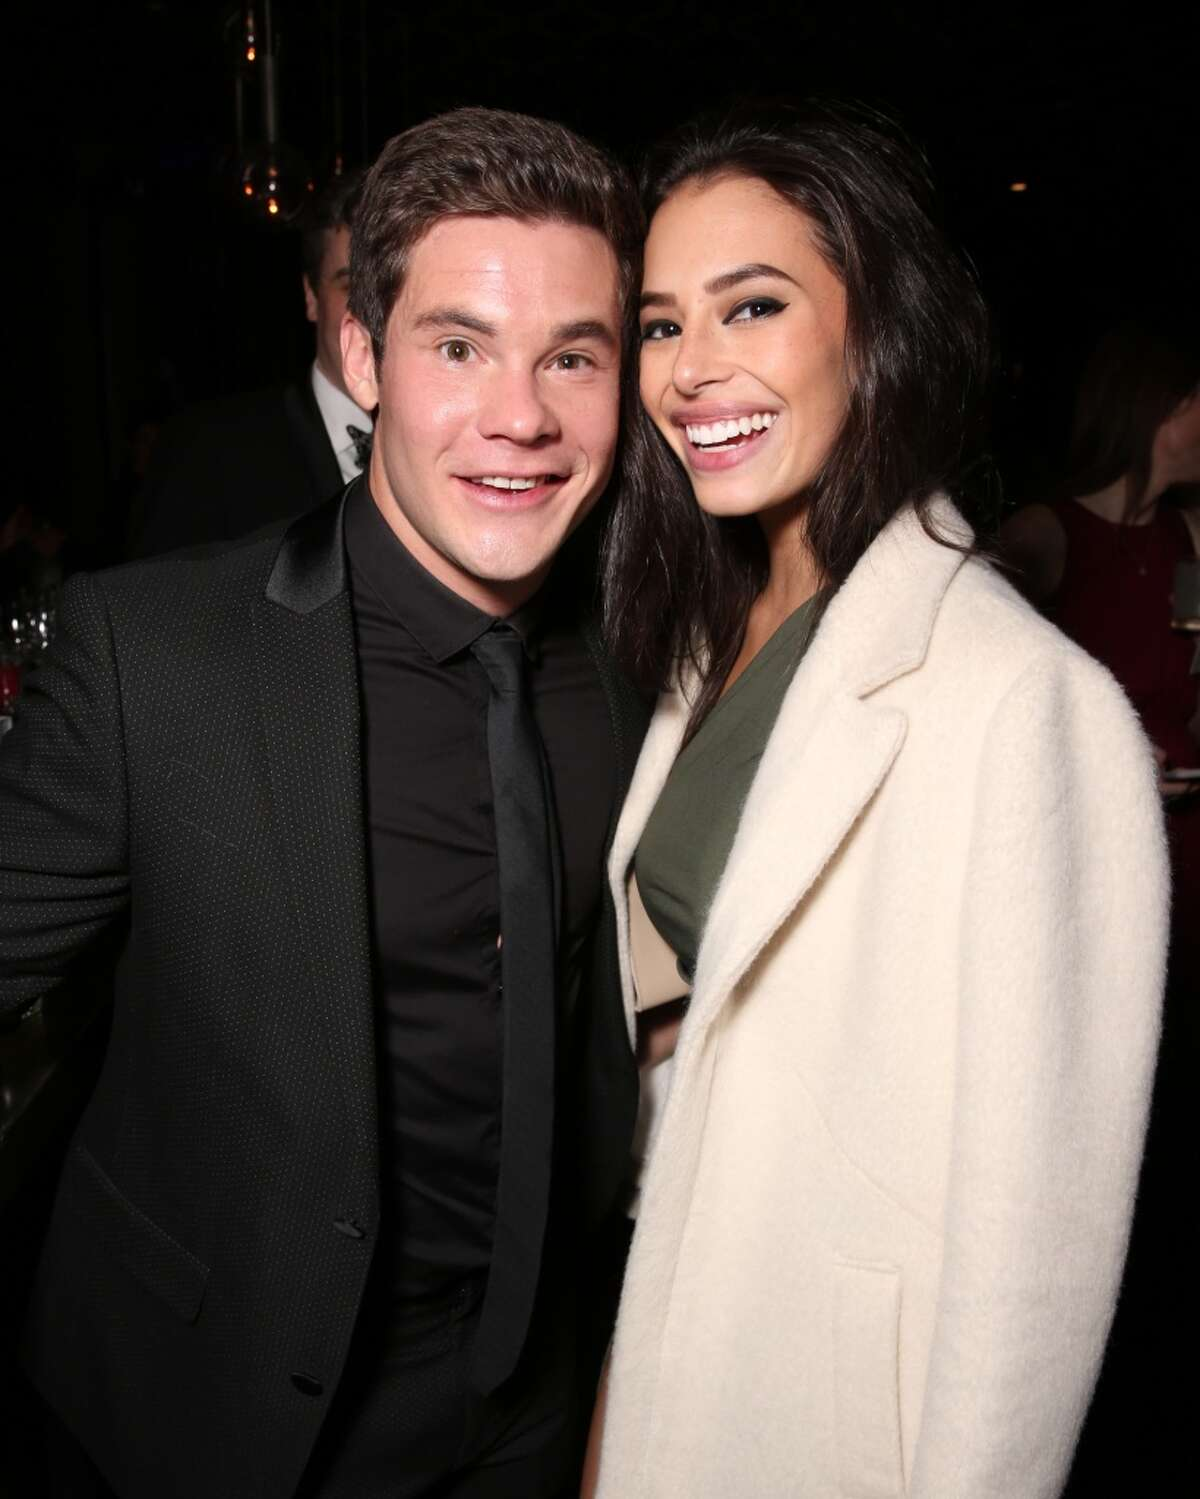 Actors Adam DeVine (L) and Chloe Bridges attend DailyMail's after party for 2016 People's Choice Awards at Club Nokia on Jan. 6, 2016 in Los Angeles, Calif.